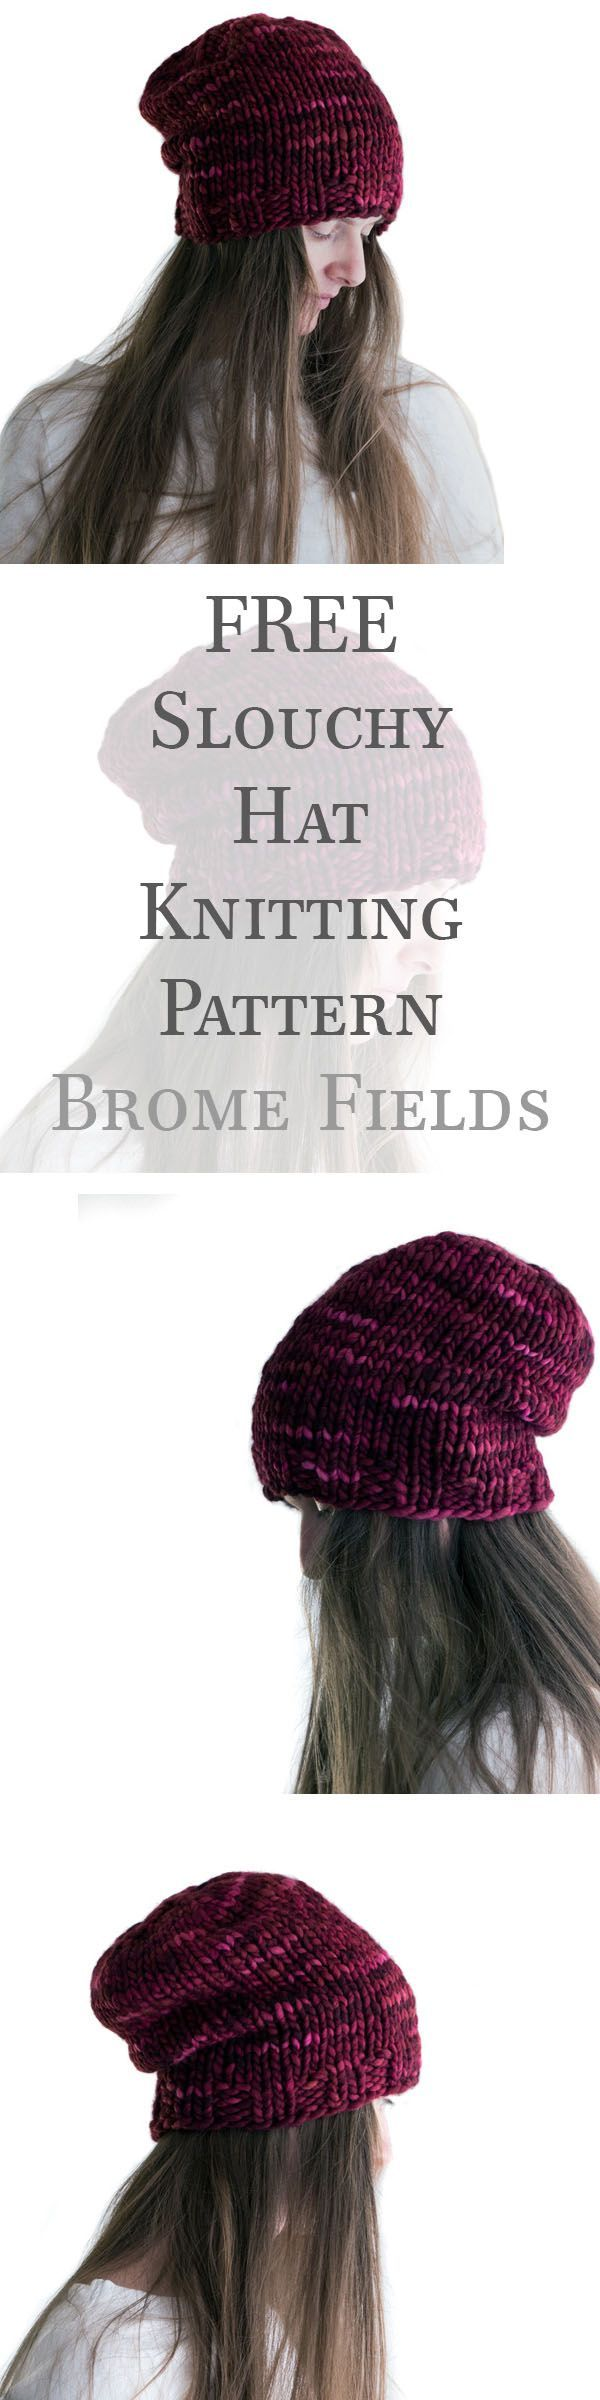 Perfect slouchy hat! | Knitty Gritty | Pinterest | Gorros y Tejido